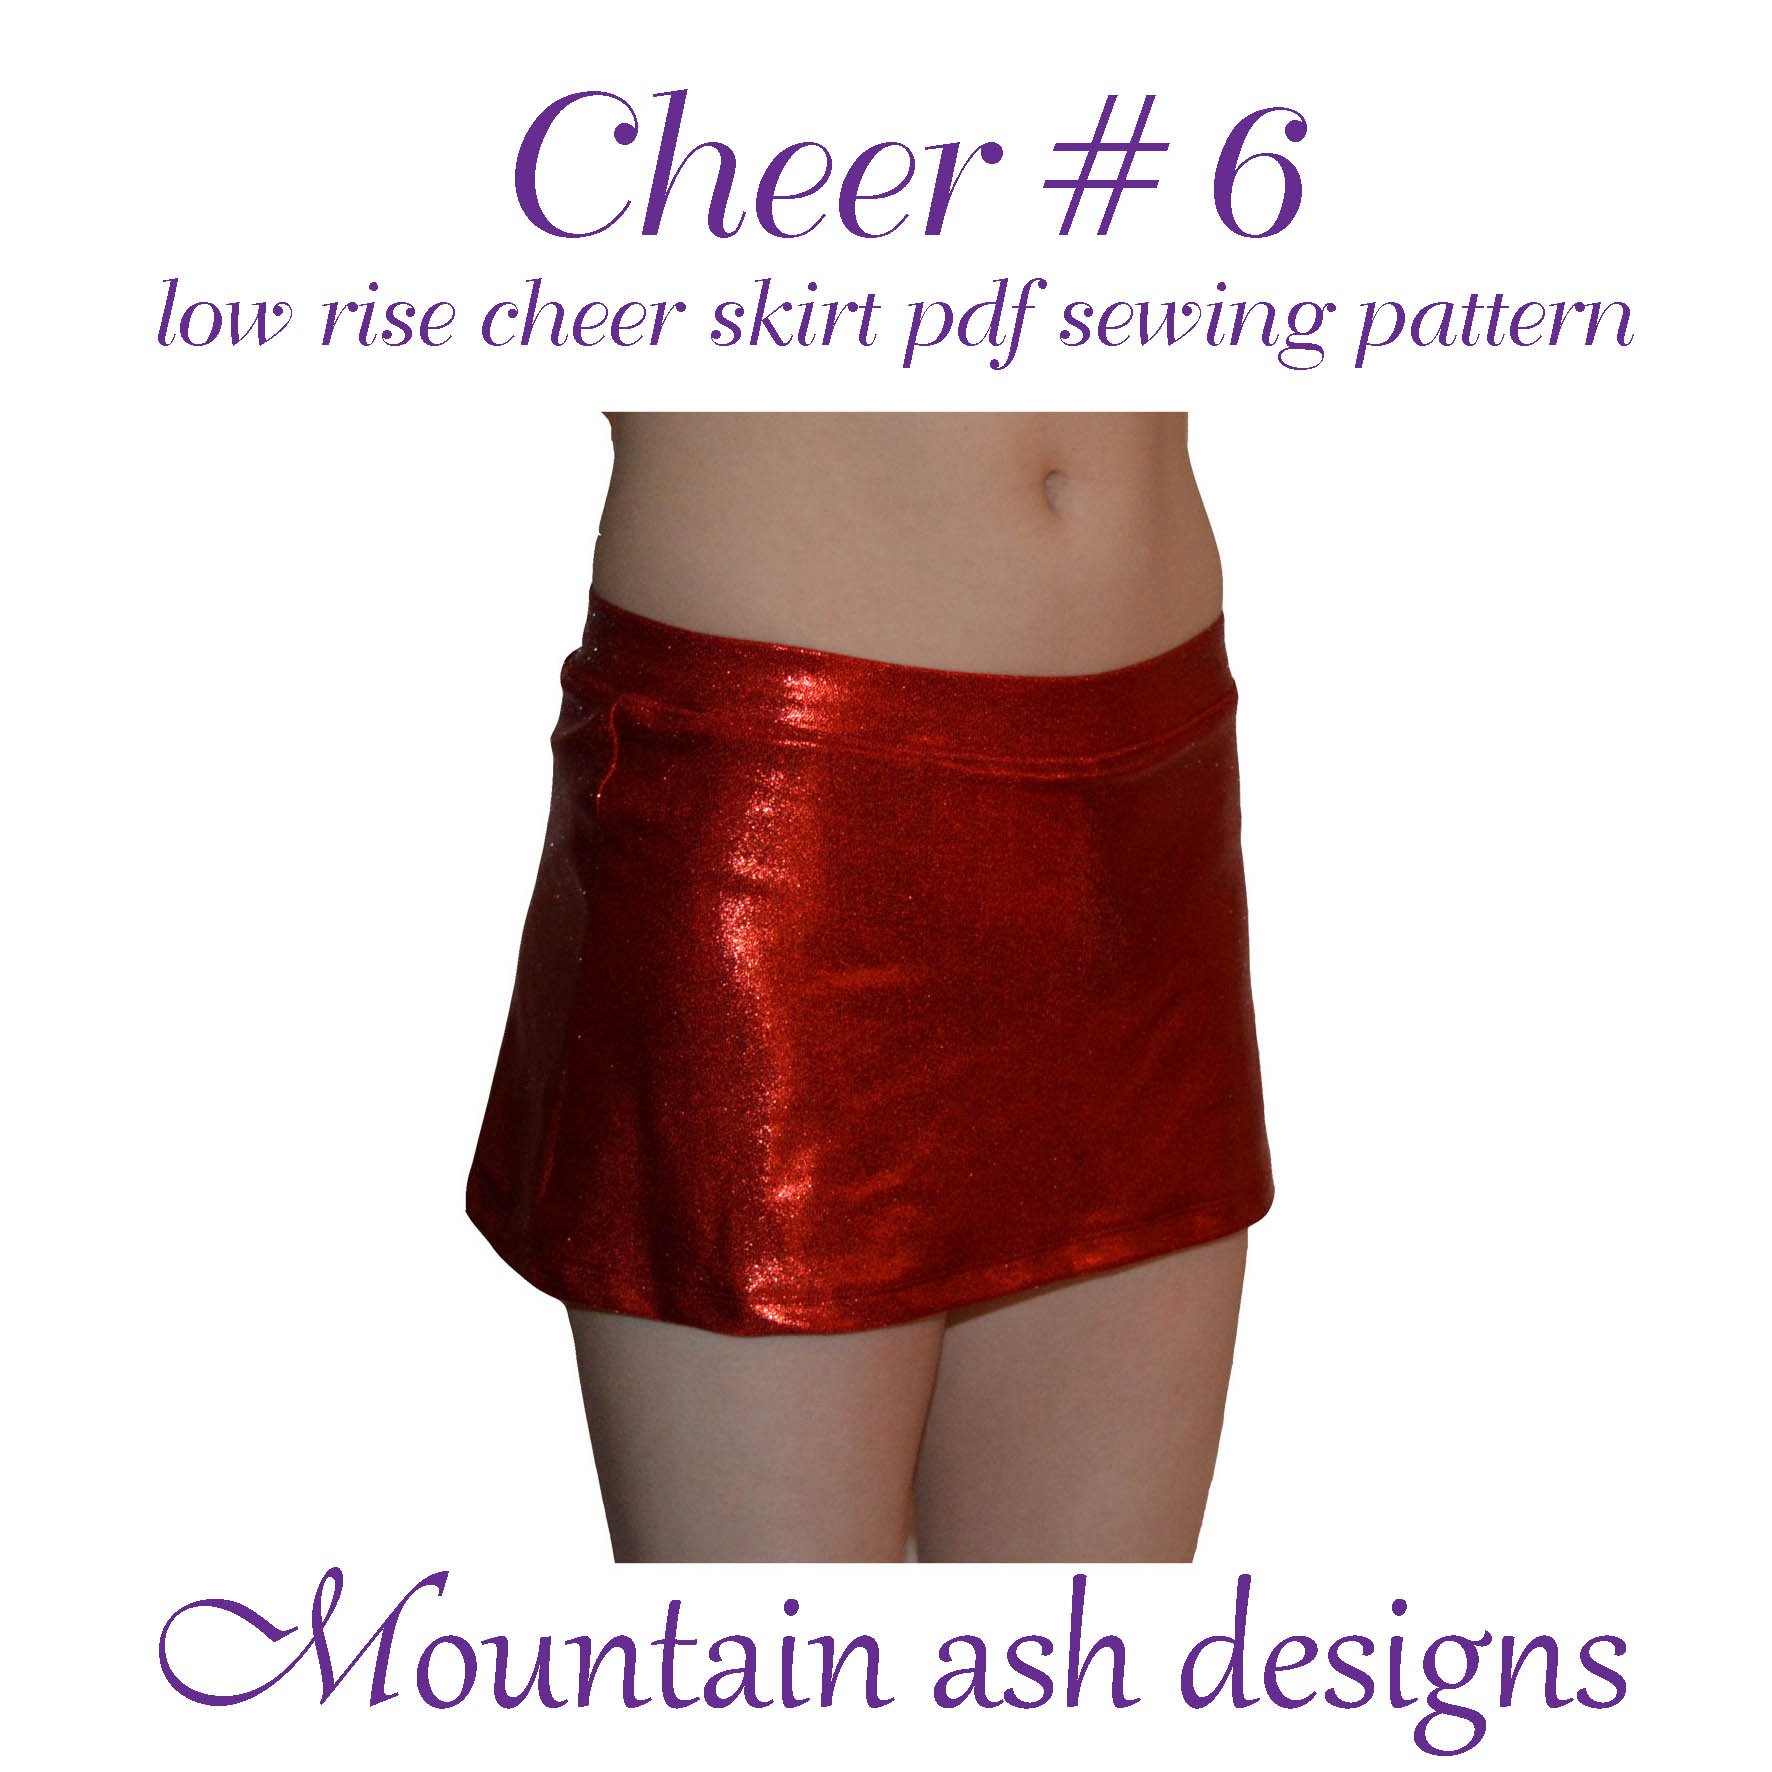 Cheer 6 Low Rise Cheerleading Skirt Sewing Pattern in Girls Sizes 2-14